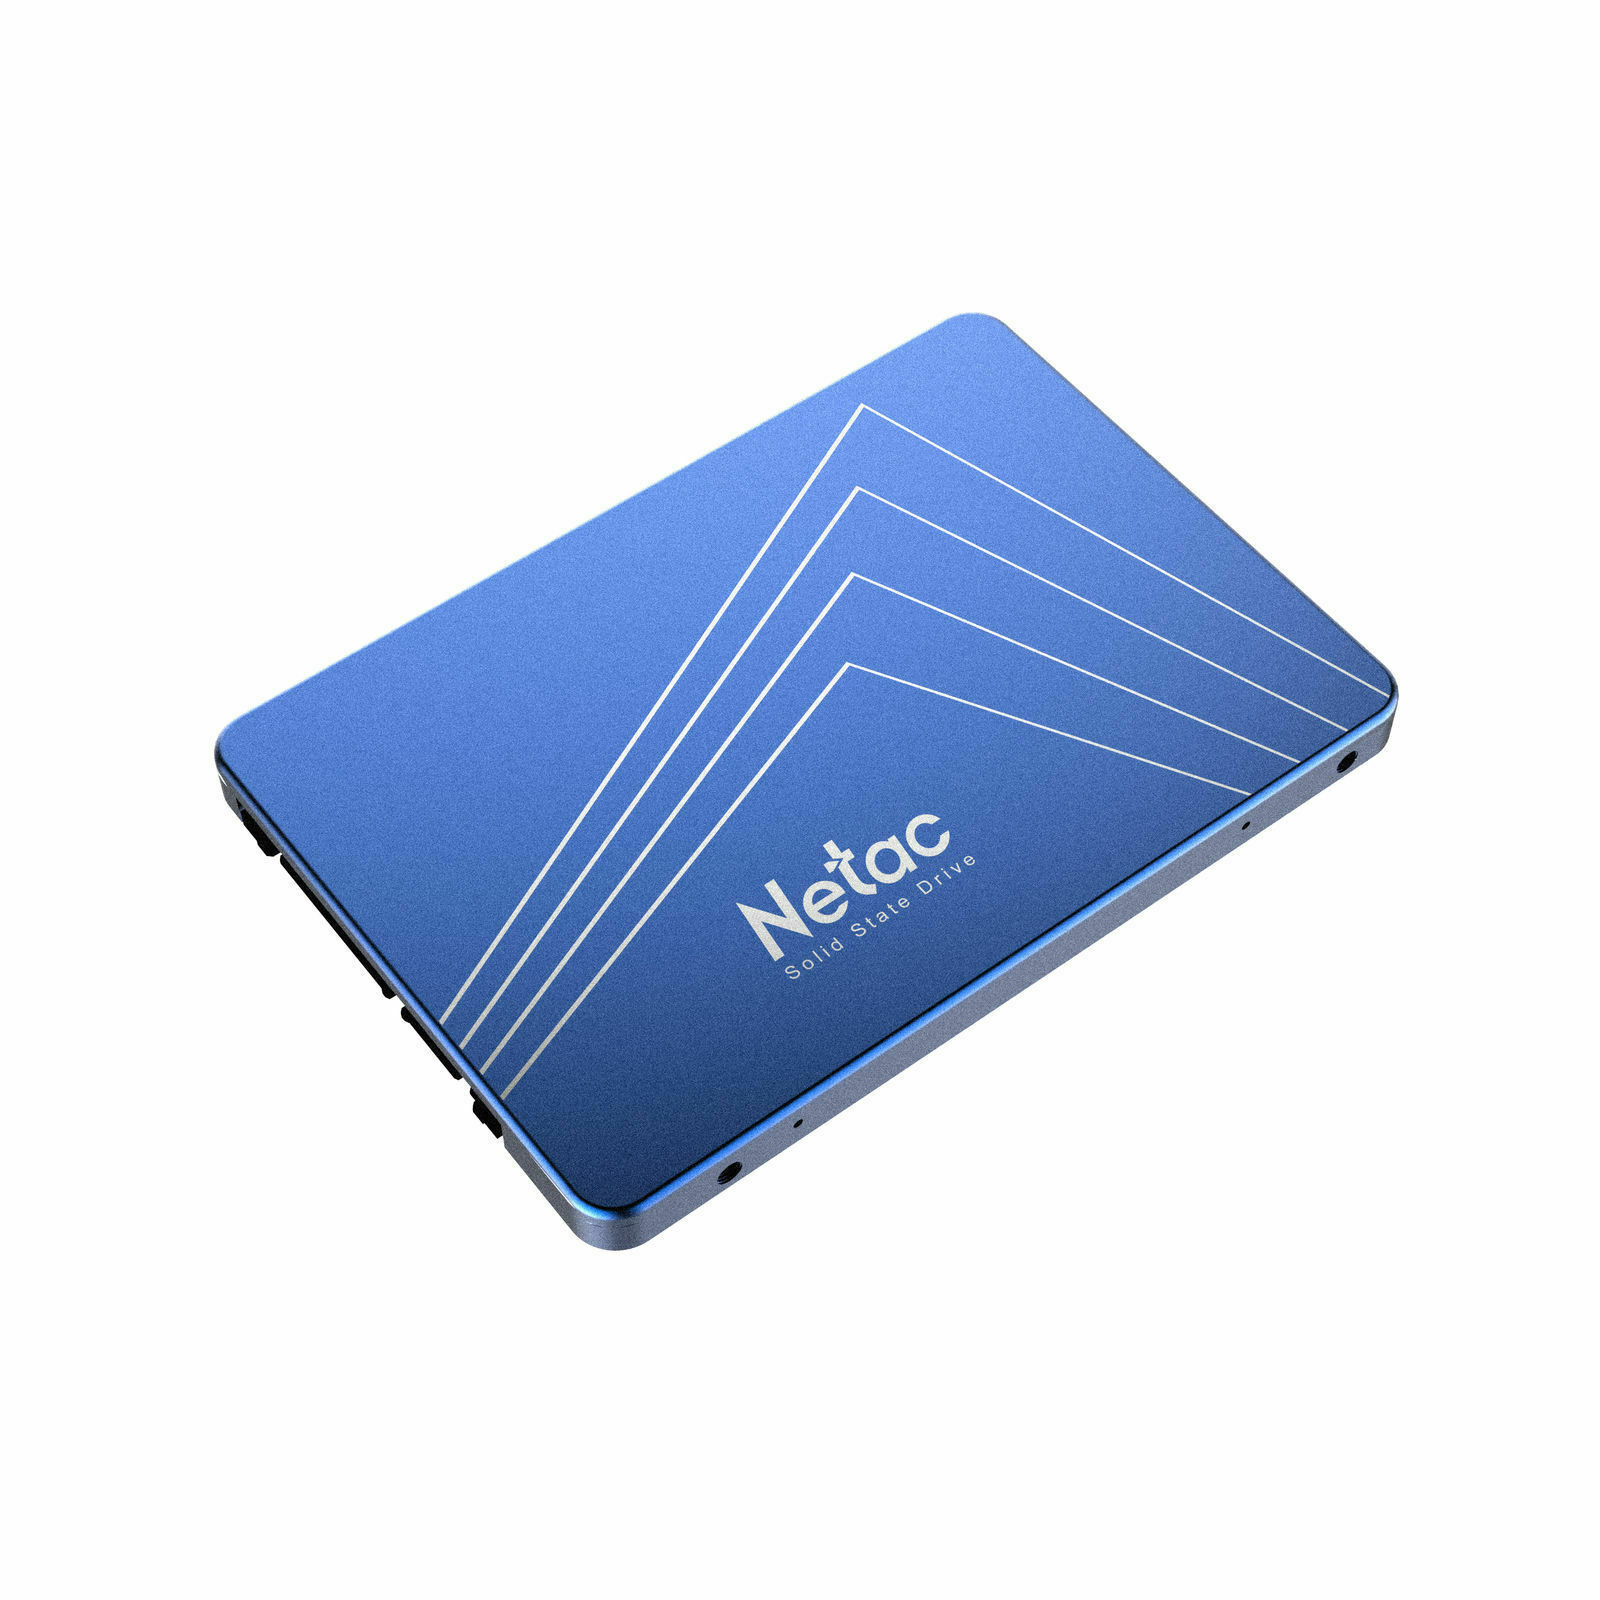 Netac N600S <font><b>SSD</b></font> 1TB 512 GB <font><b>720GB</b></font> 360GB SATA 3 <font><b>HD</b></font> <font><b>SSD</b></font> Hard Disk 128 GB 256 GB Laptop Internal Solid State Drive For Desktop PC image